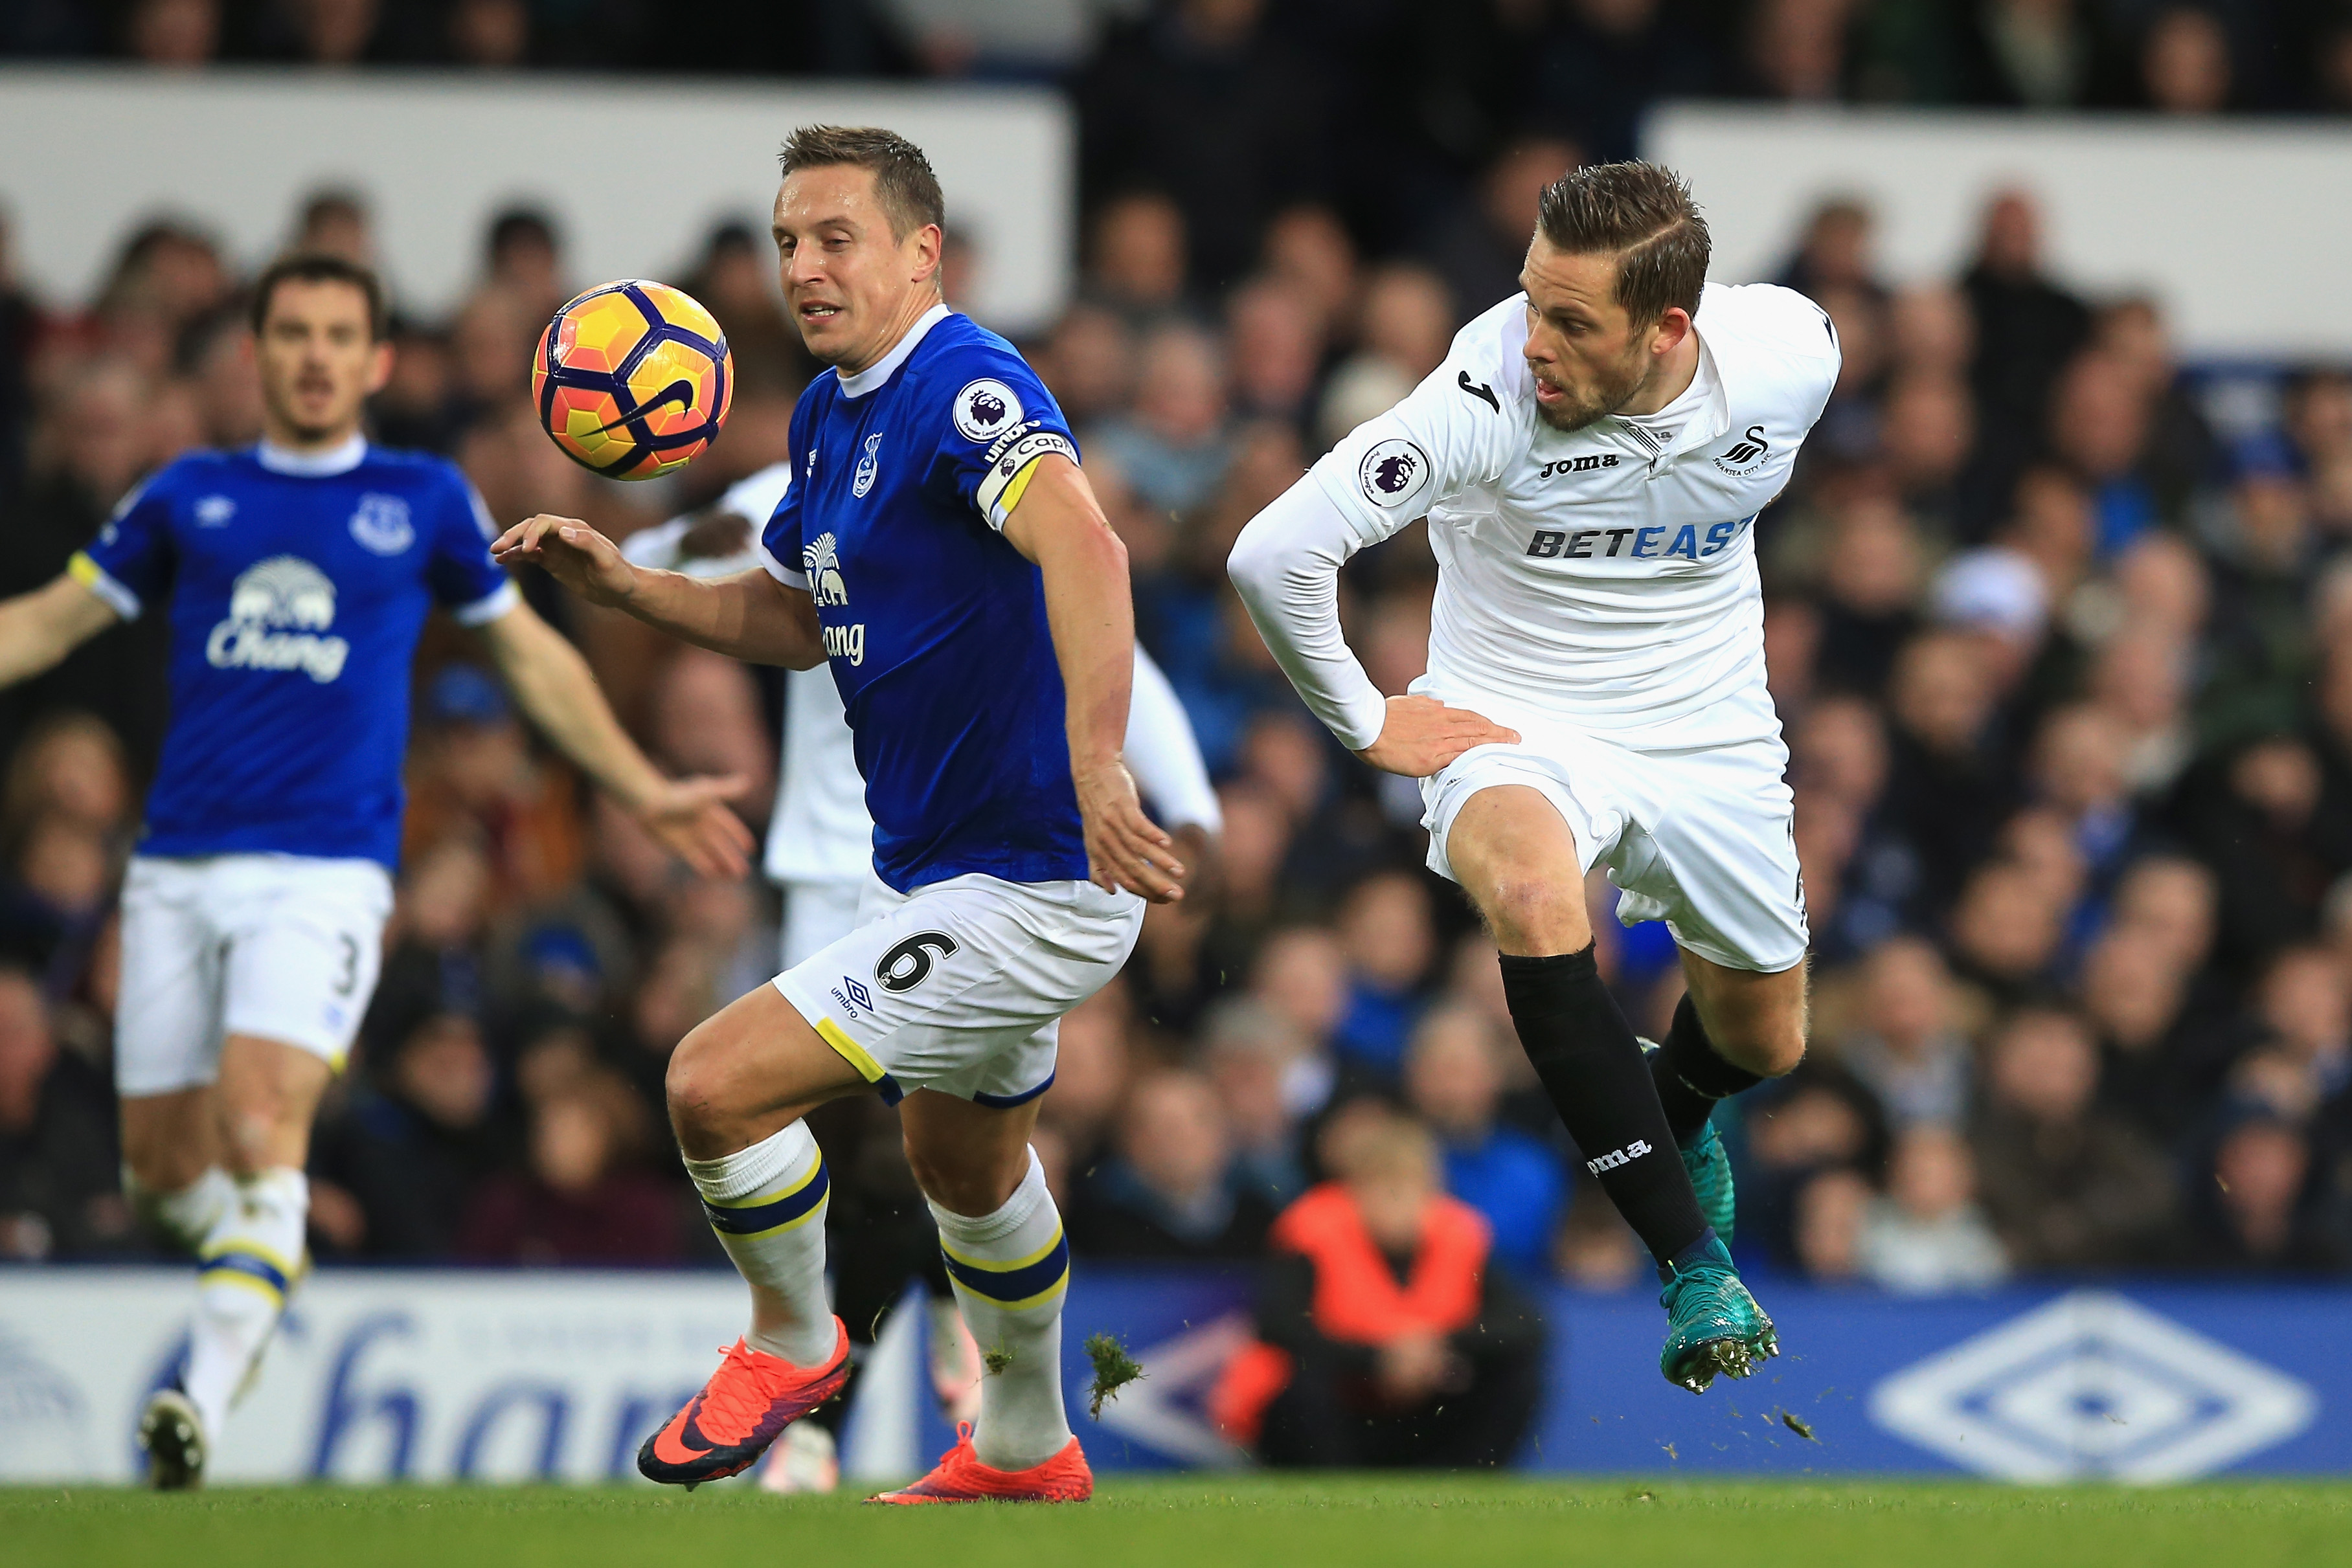 Everton Sign Swansea Midfielder Gylfi Sigurdsson in £45m Deal